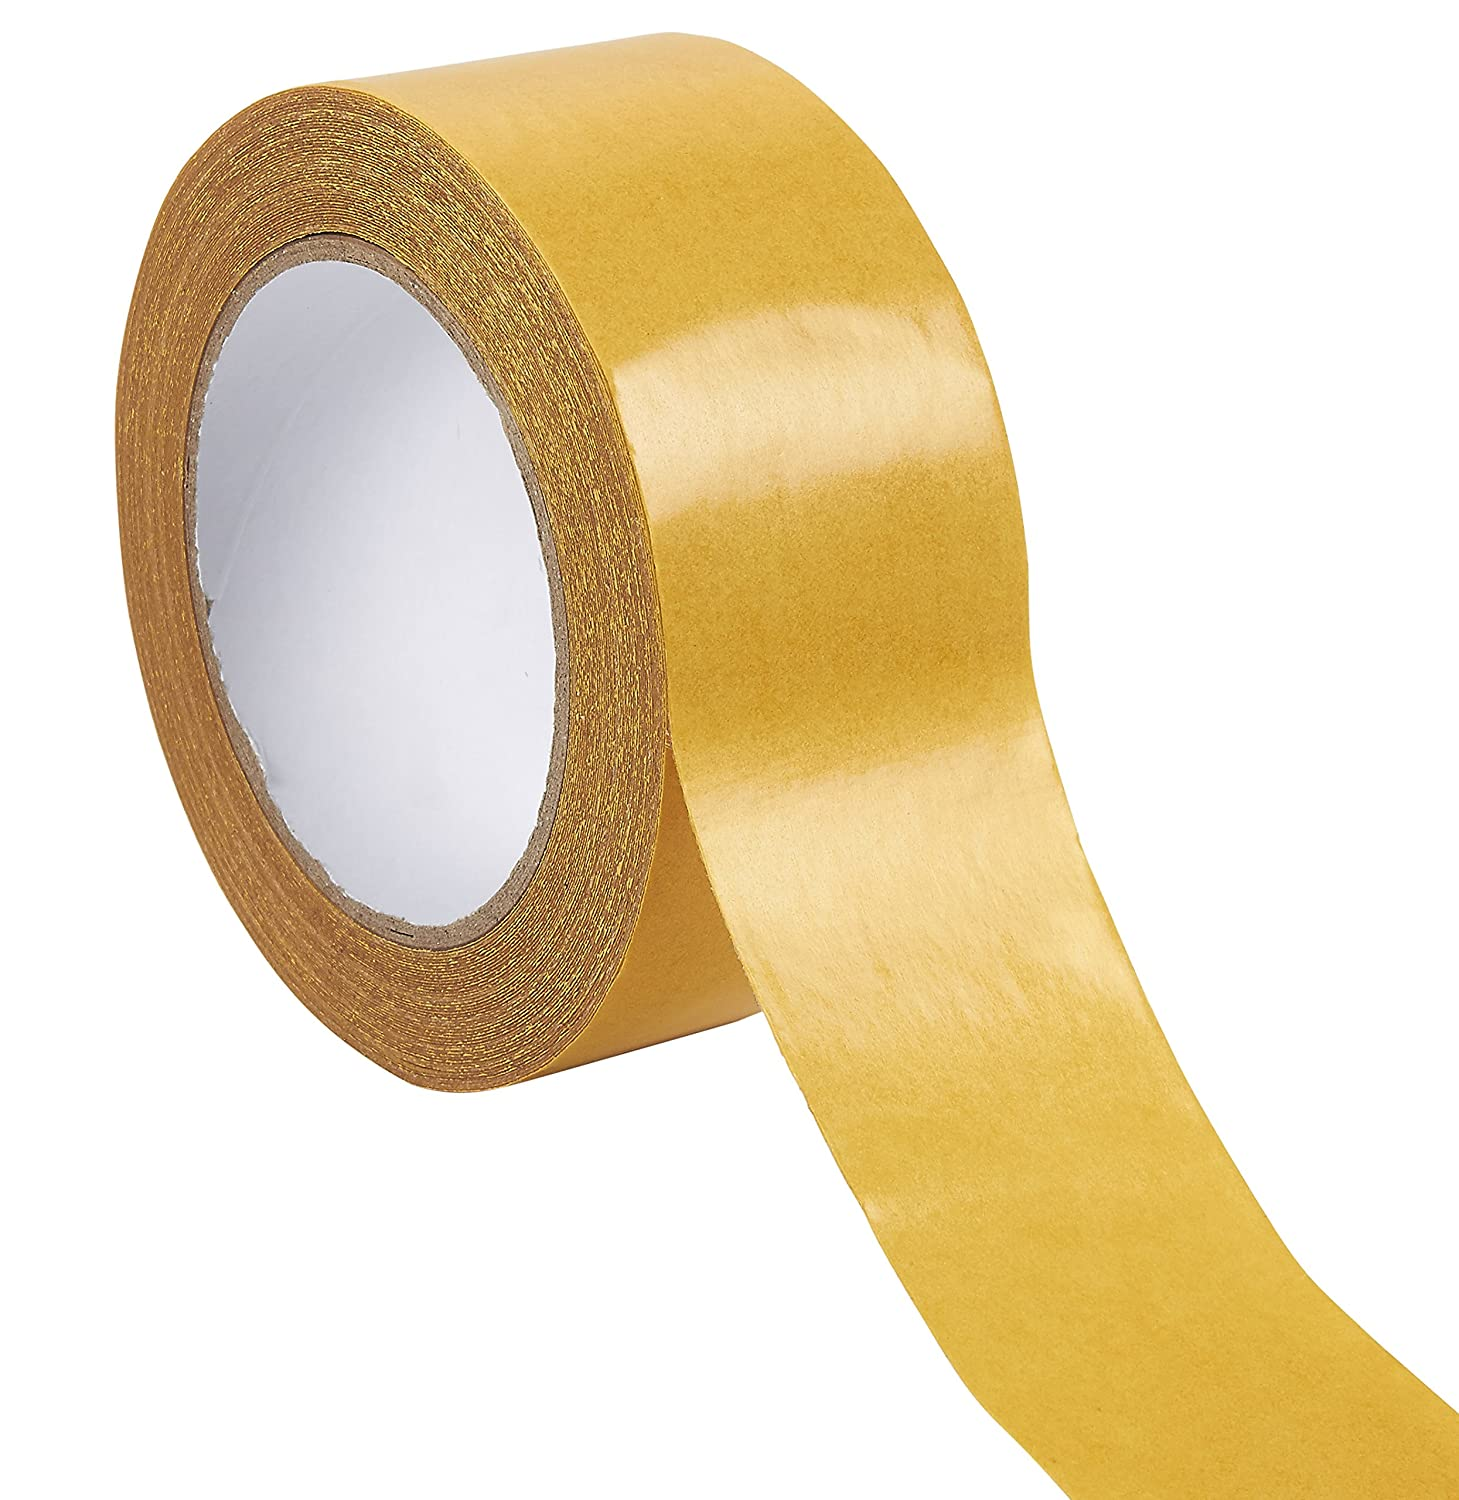 Heavy Duty Double-Sided Tape - Carpet Tape, Anti-Skid Tape Rug Gripper Adhesive for Area Rugs, Hardwood, Tile, Indoor, and Outdoor Floors, 2-Sided, 2-inch x 49-Feet Juvale